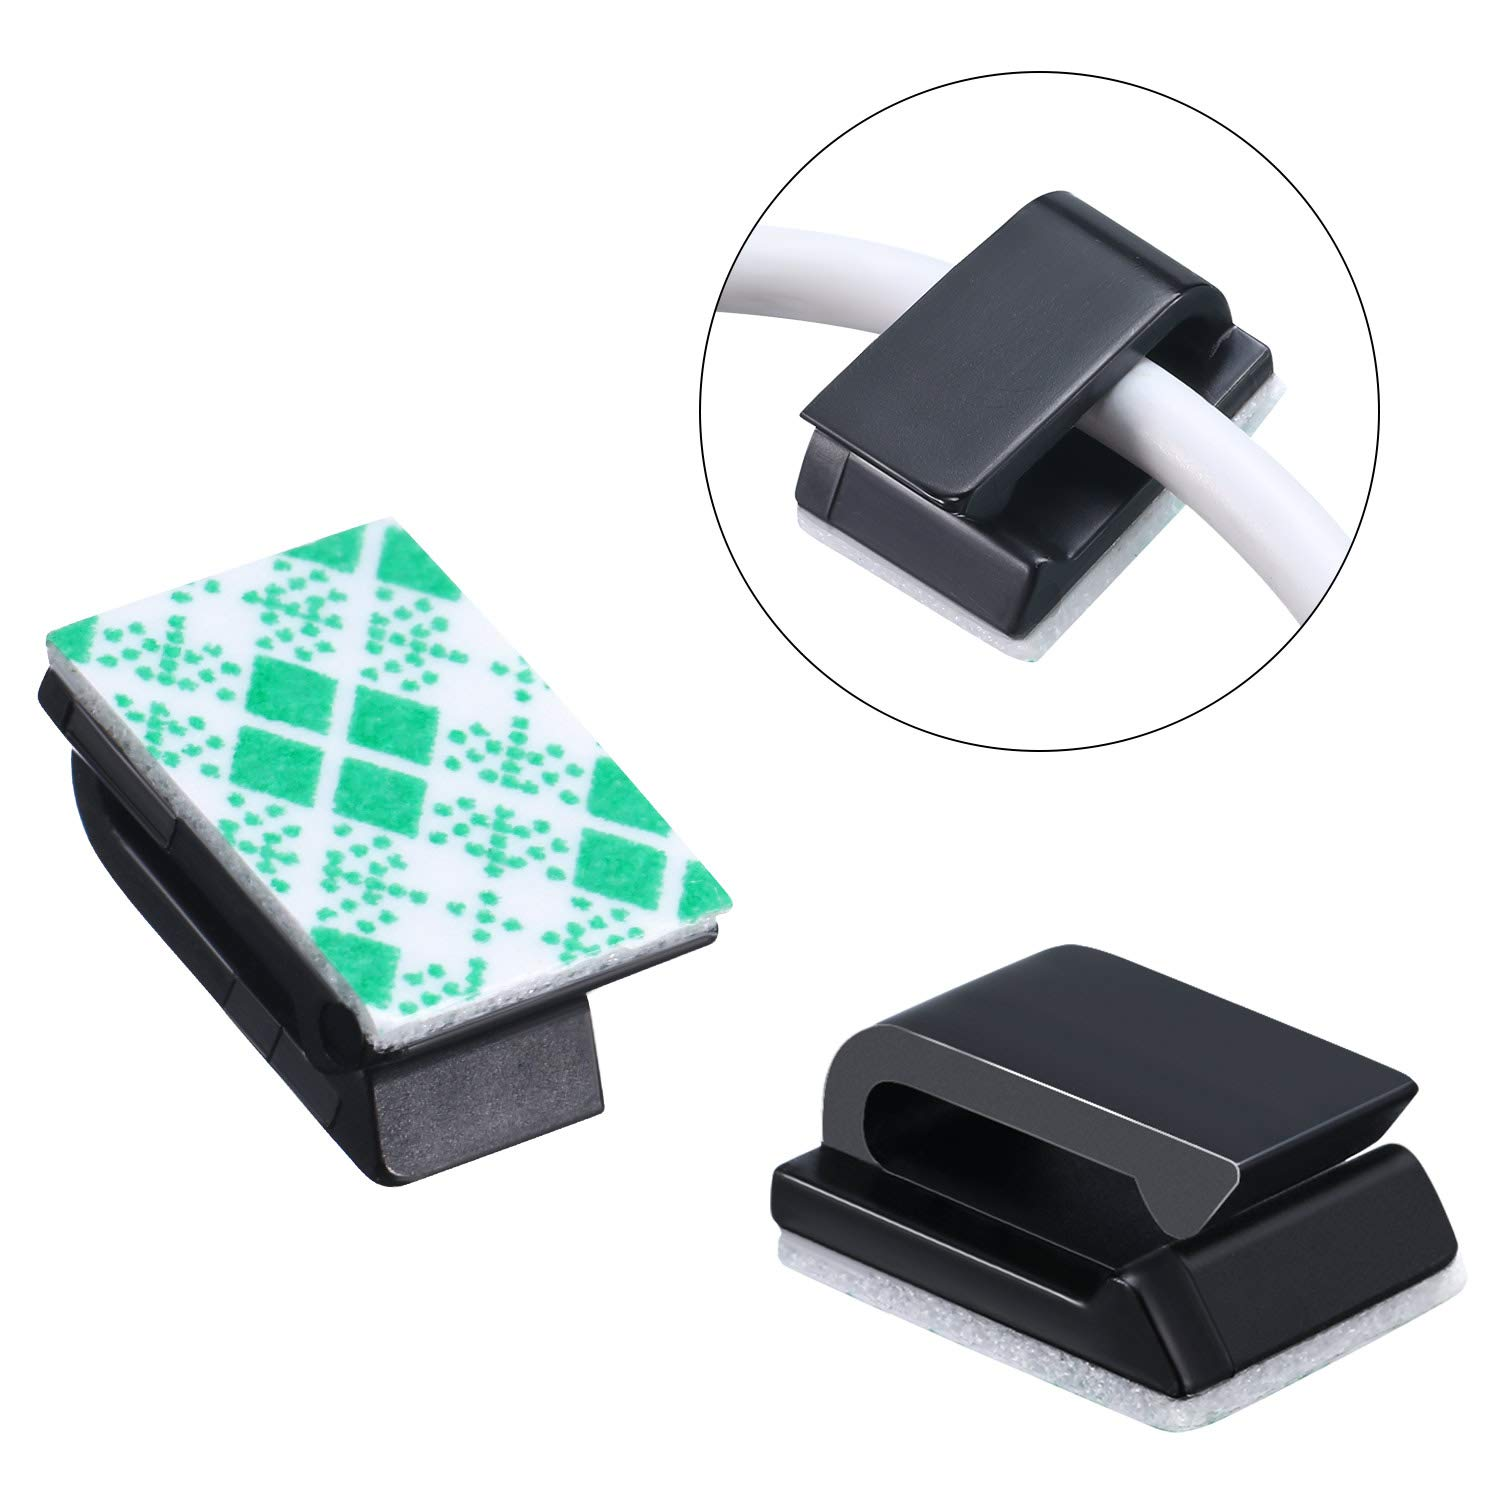 15.5 x 12.5 mm, White Office and Home Chuangdi 50 Pack Self-Adhesive Cable Clips Electrical Wire Clips Cable Management Clips for Car